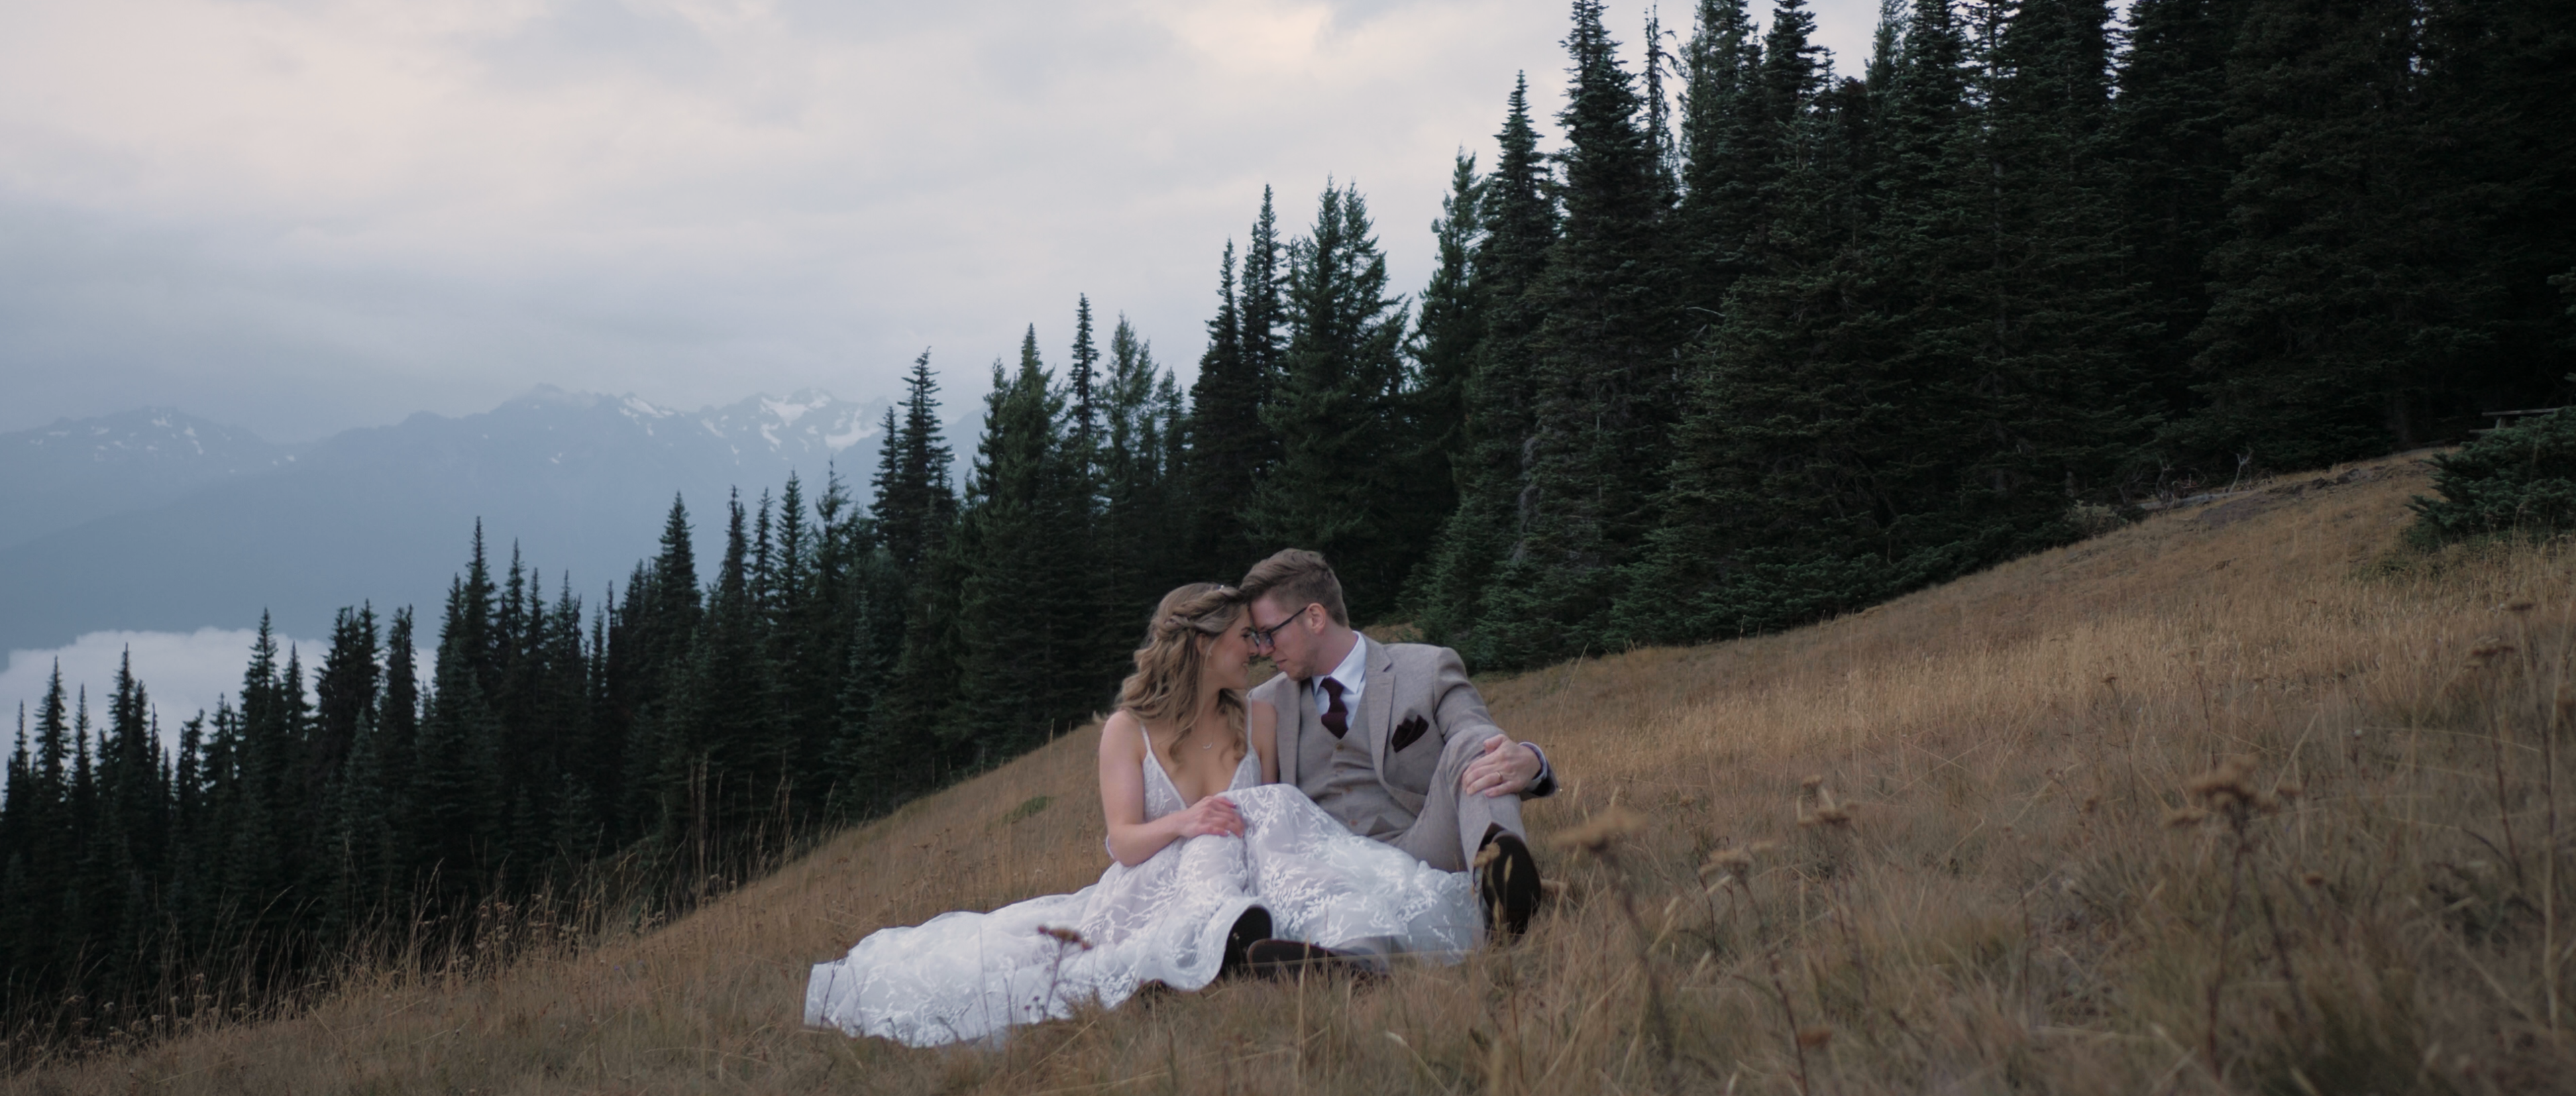 Sam + Andrew | Port Angeles, Washington | Hurricane Ridge